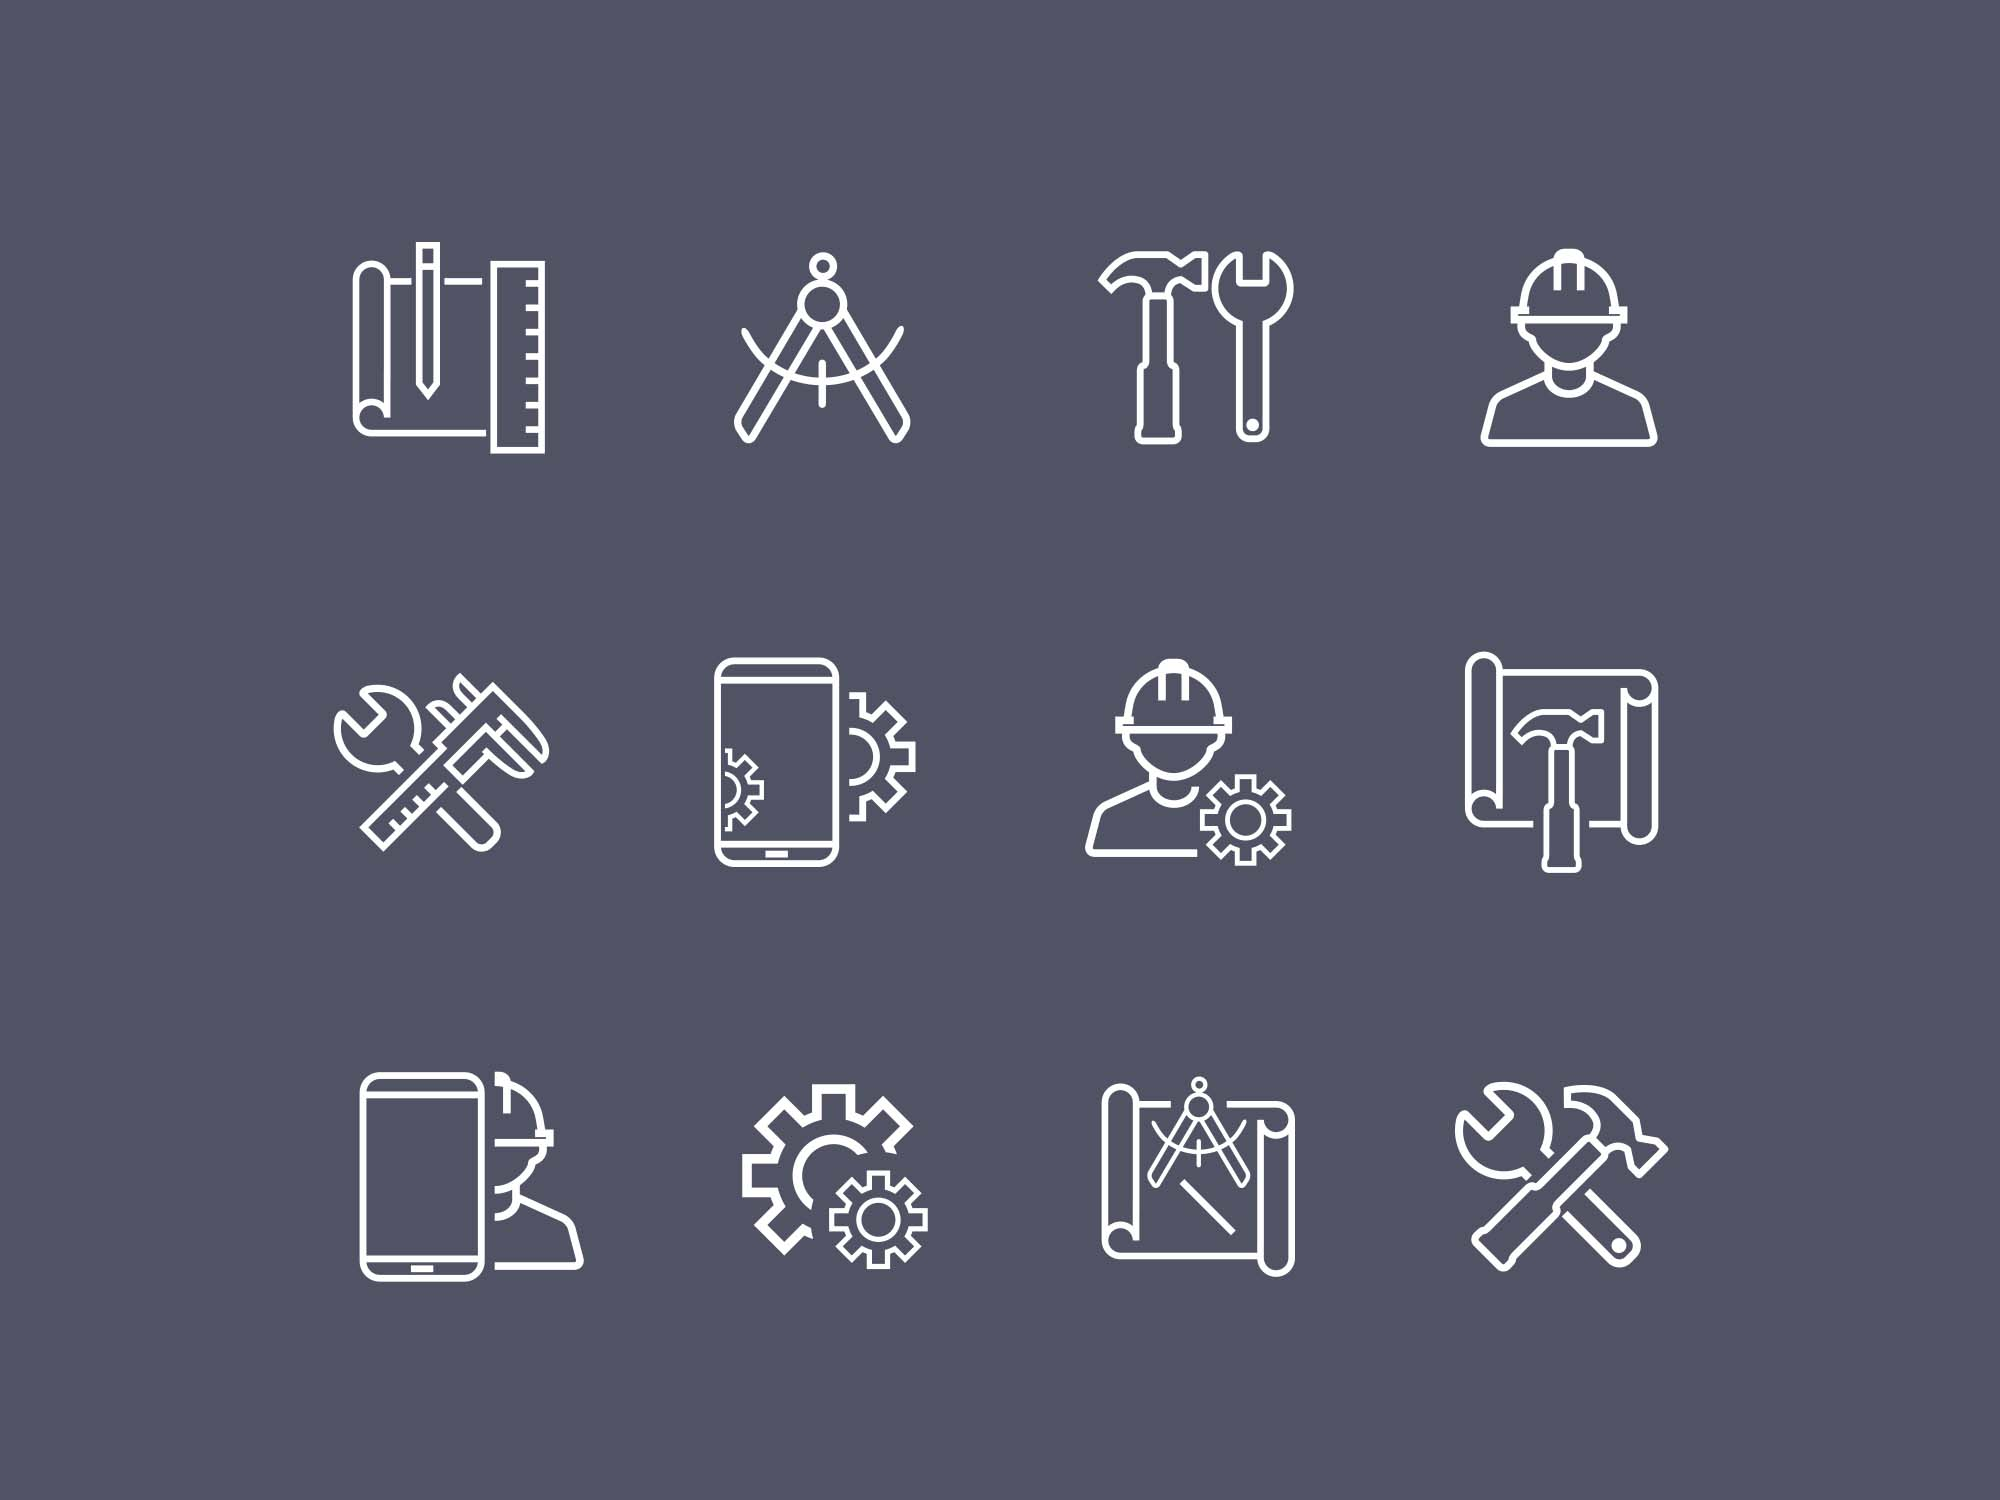 Work Icons